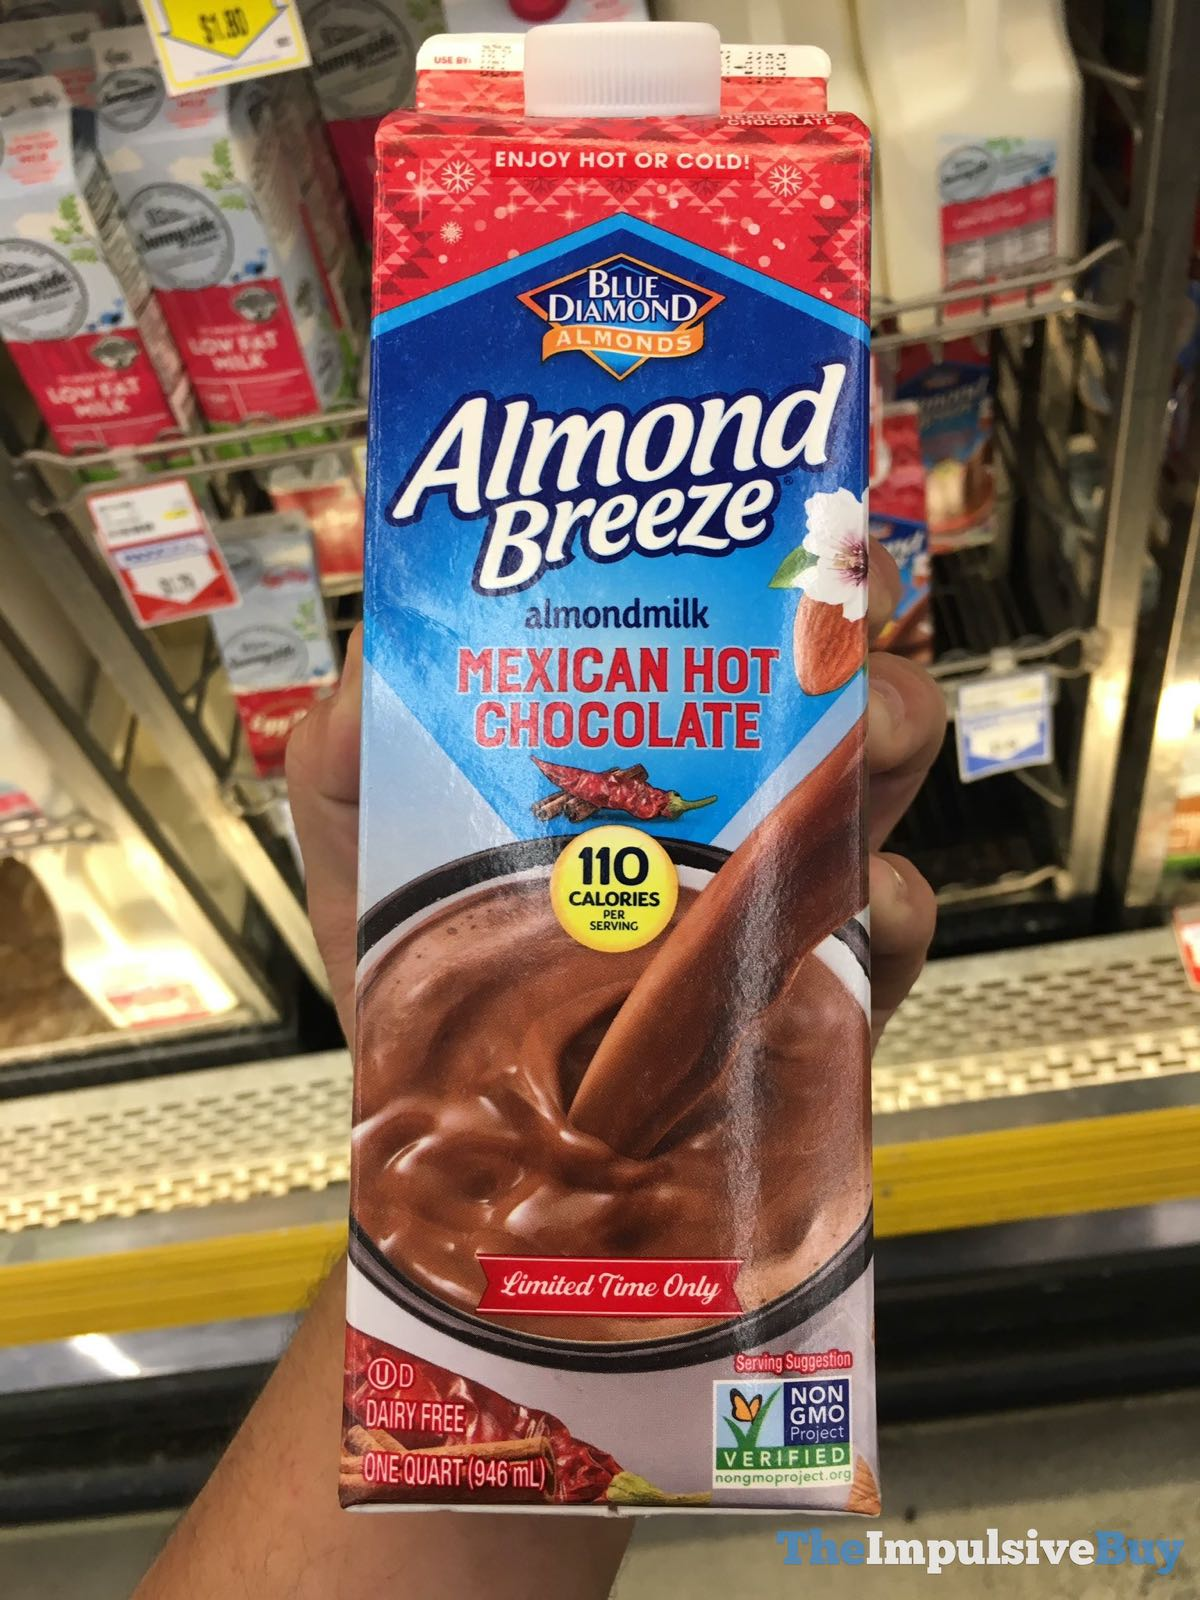 SPOTTED: Blue Diamond Almond Breeze Mexican Hot Chocolate Almondmilk - The Impulsive Buy